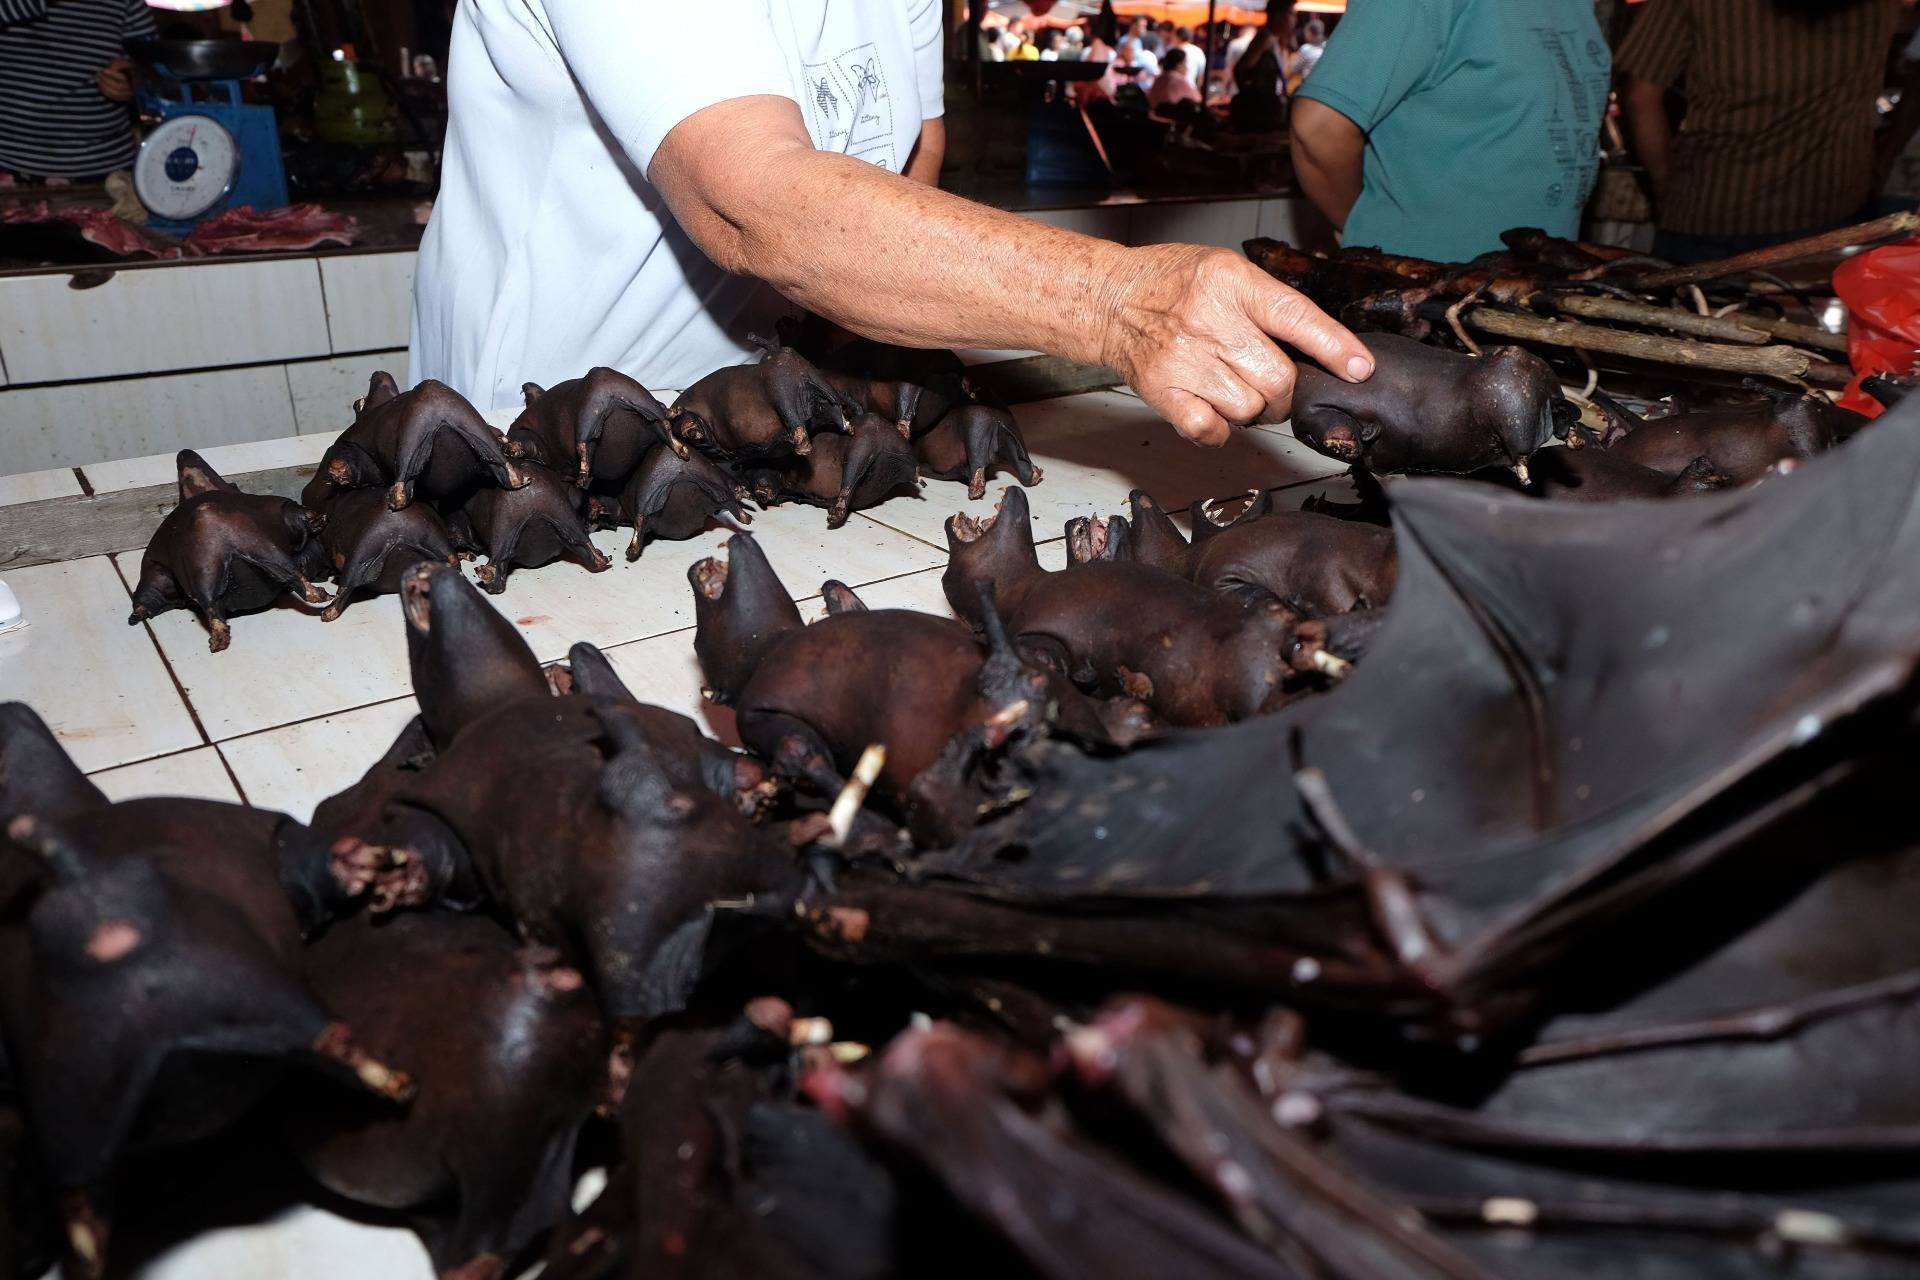 A vendor selling bats at the Tomohon Extreme Meat market on Sulawesi island, Indonesia, on Feb. 8, 2020. RONNY ADOLOF BUOL/AFP via Getty Images